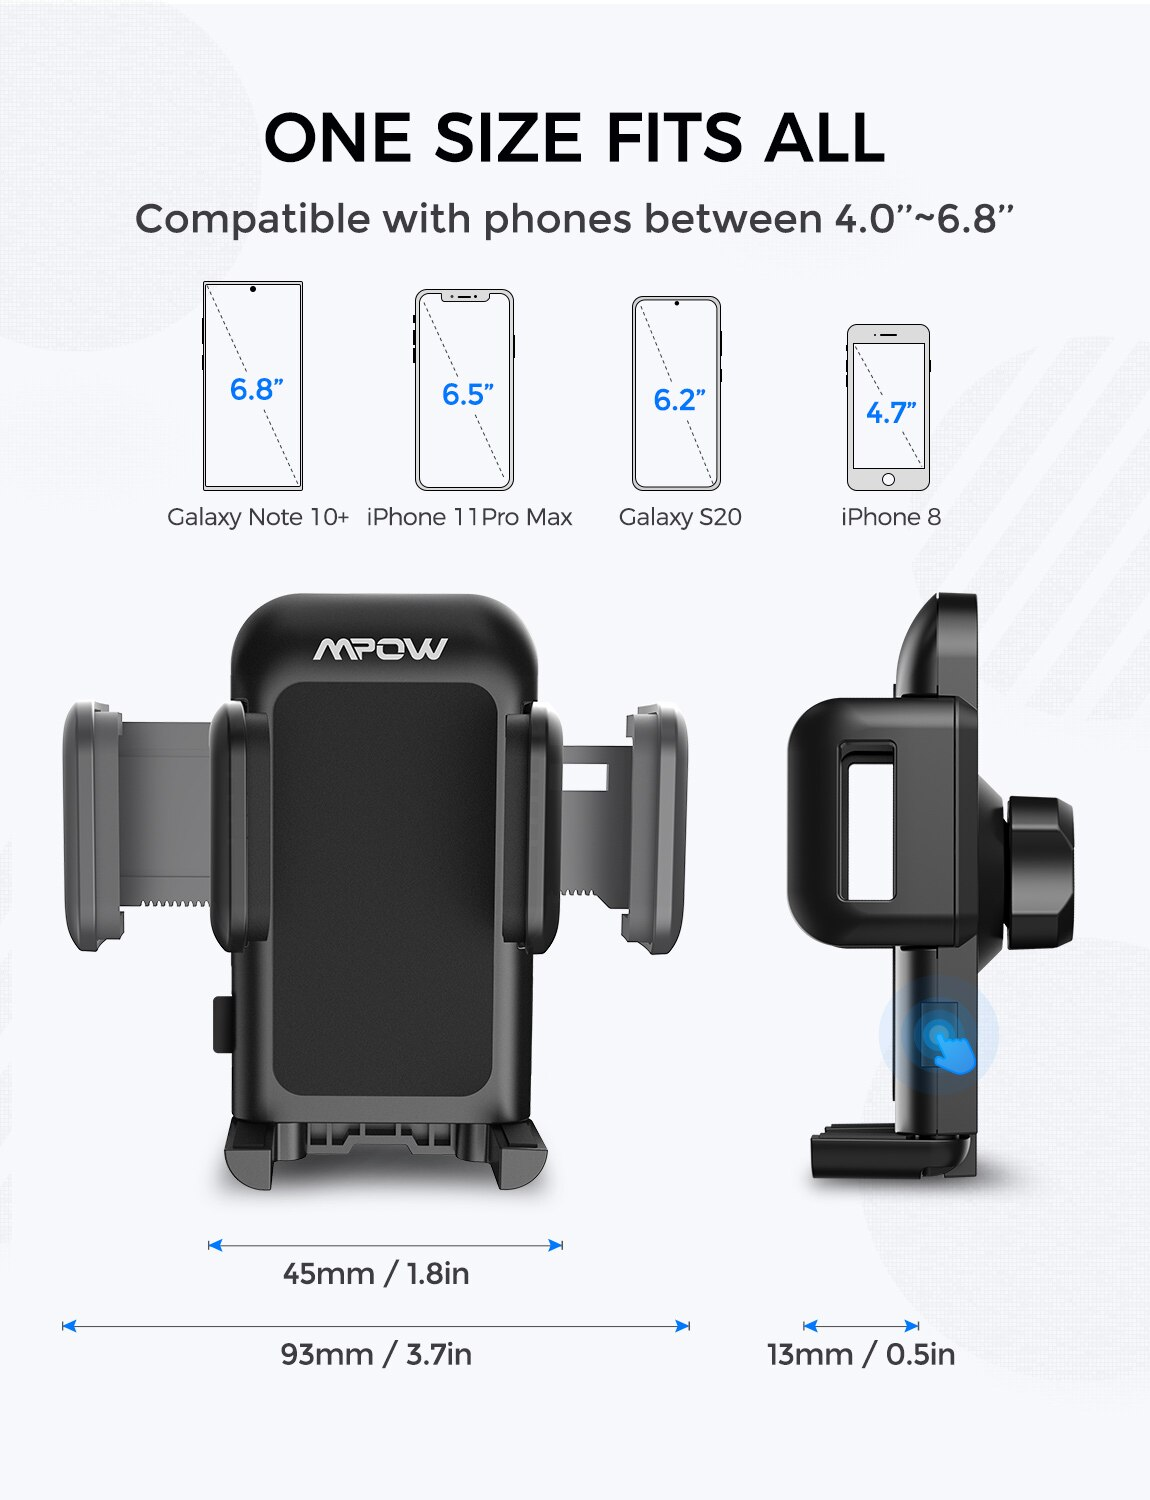 H1ff4273f2a6446beaabf6e69eaa00a5fG - Mpow 051 Car Phone Holder CD Slot Car Phone Mount with Three-Side Grip and One-Touch Design for iPhone 12/12Mini/12Pro/12Pro Max